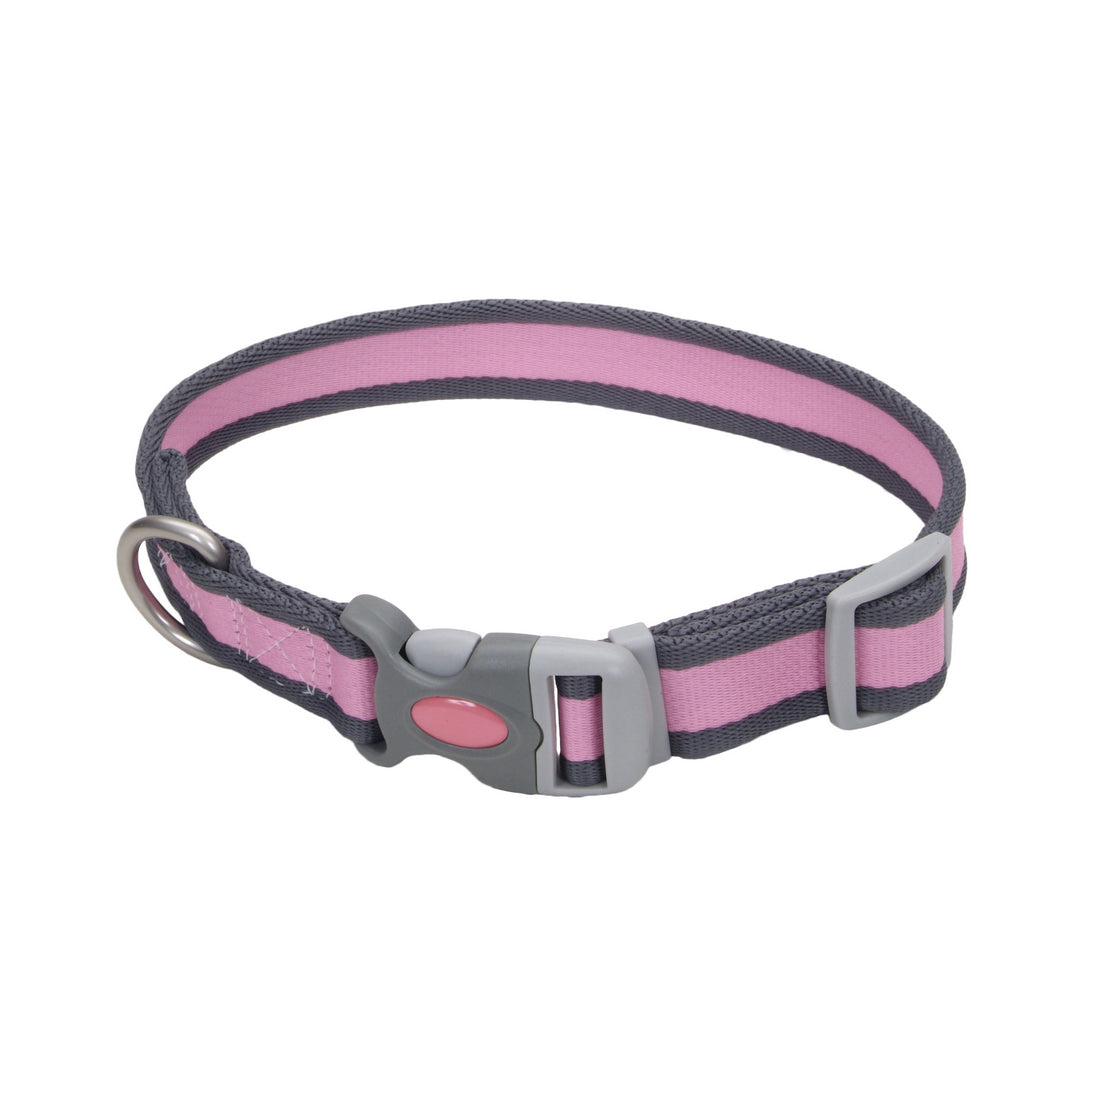 "Coastal Pet Attire Pro Adjustable Reflective Collar 18-26"" - 1"" Pink with Gray"